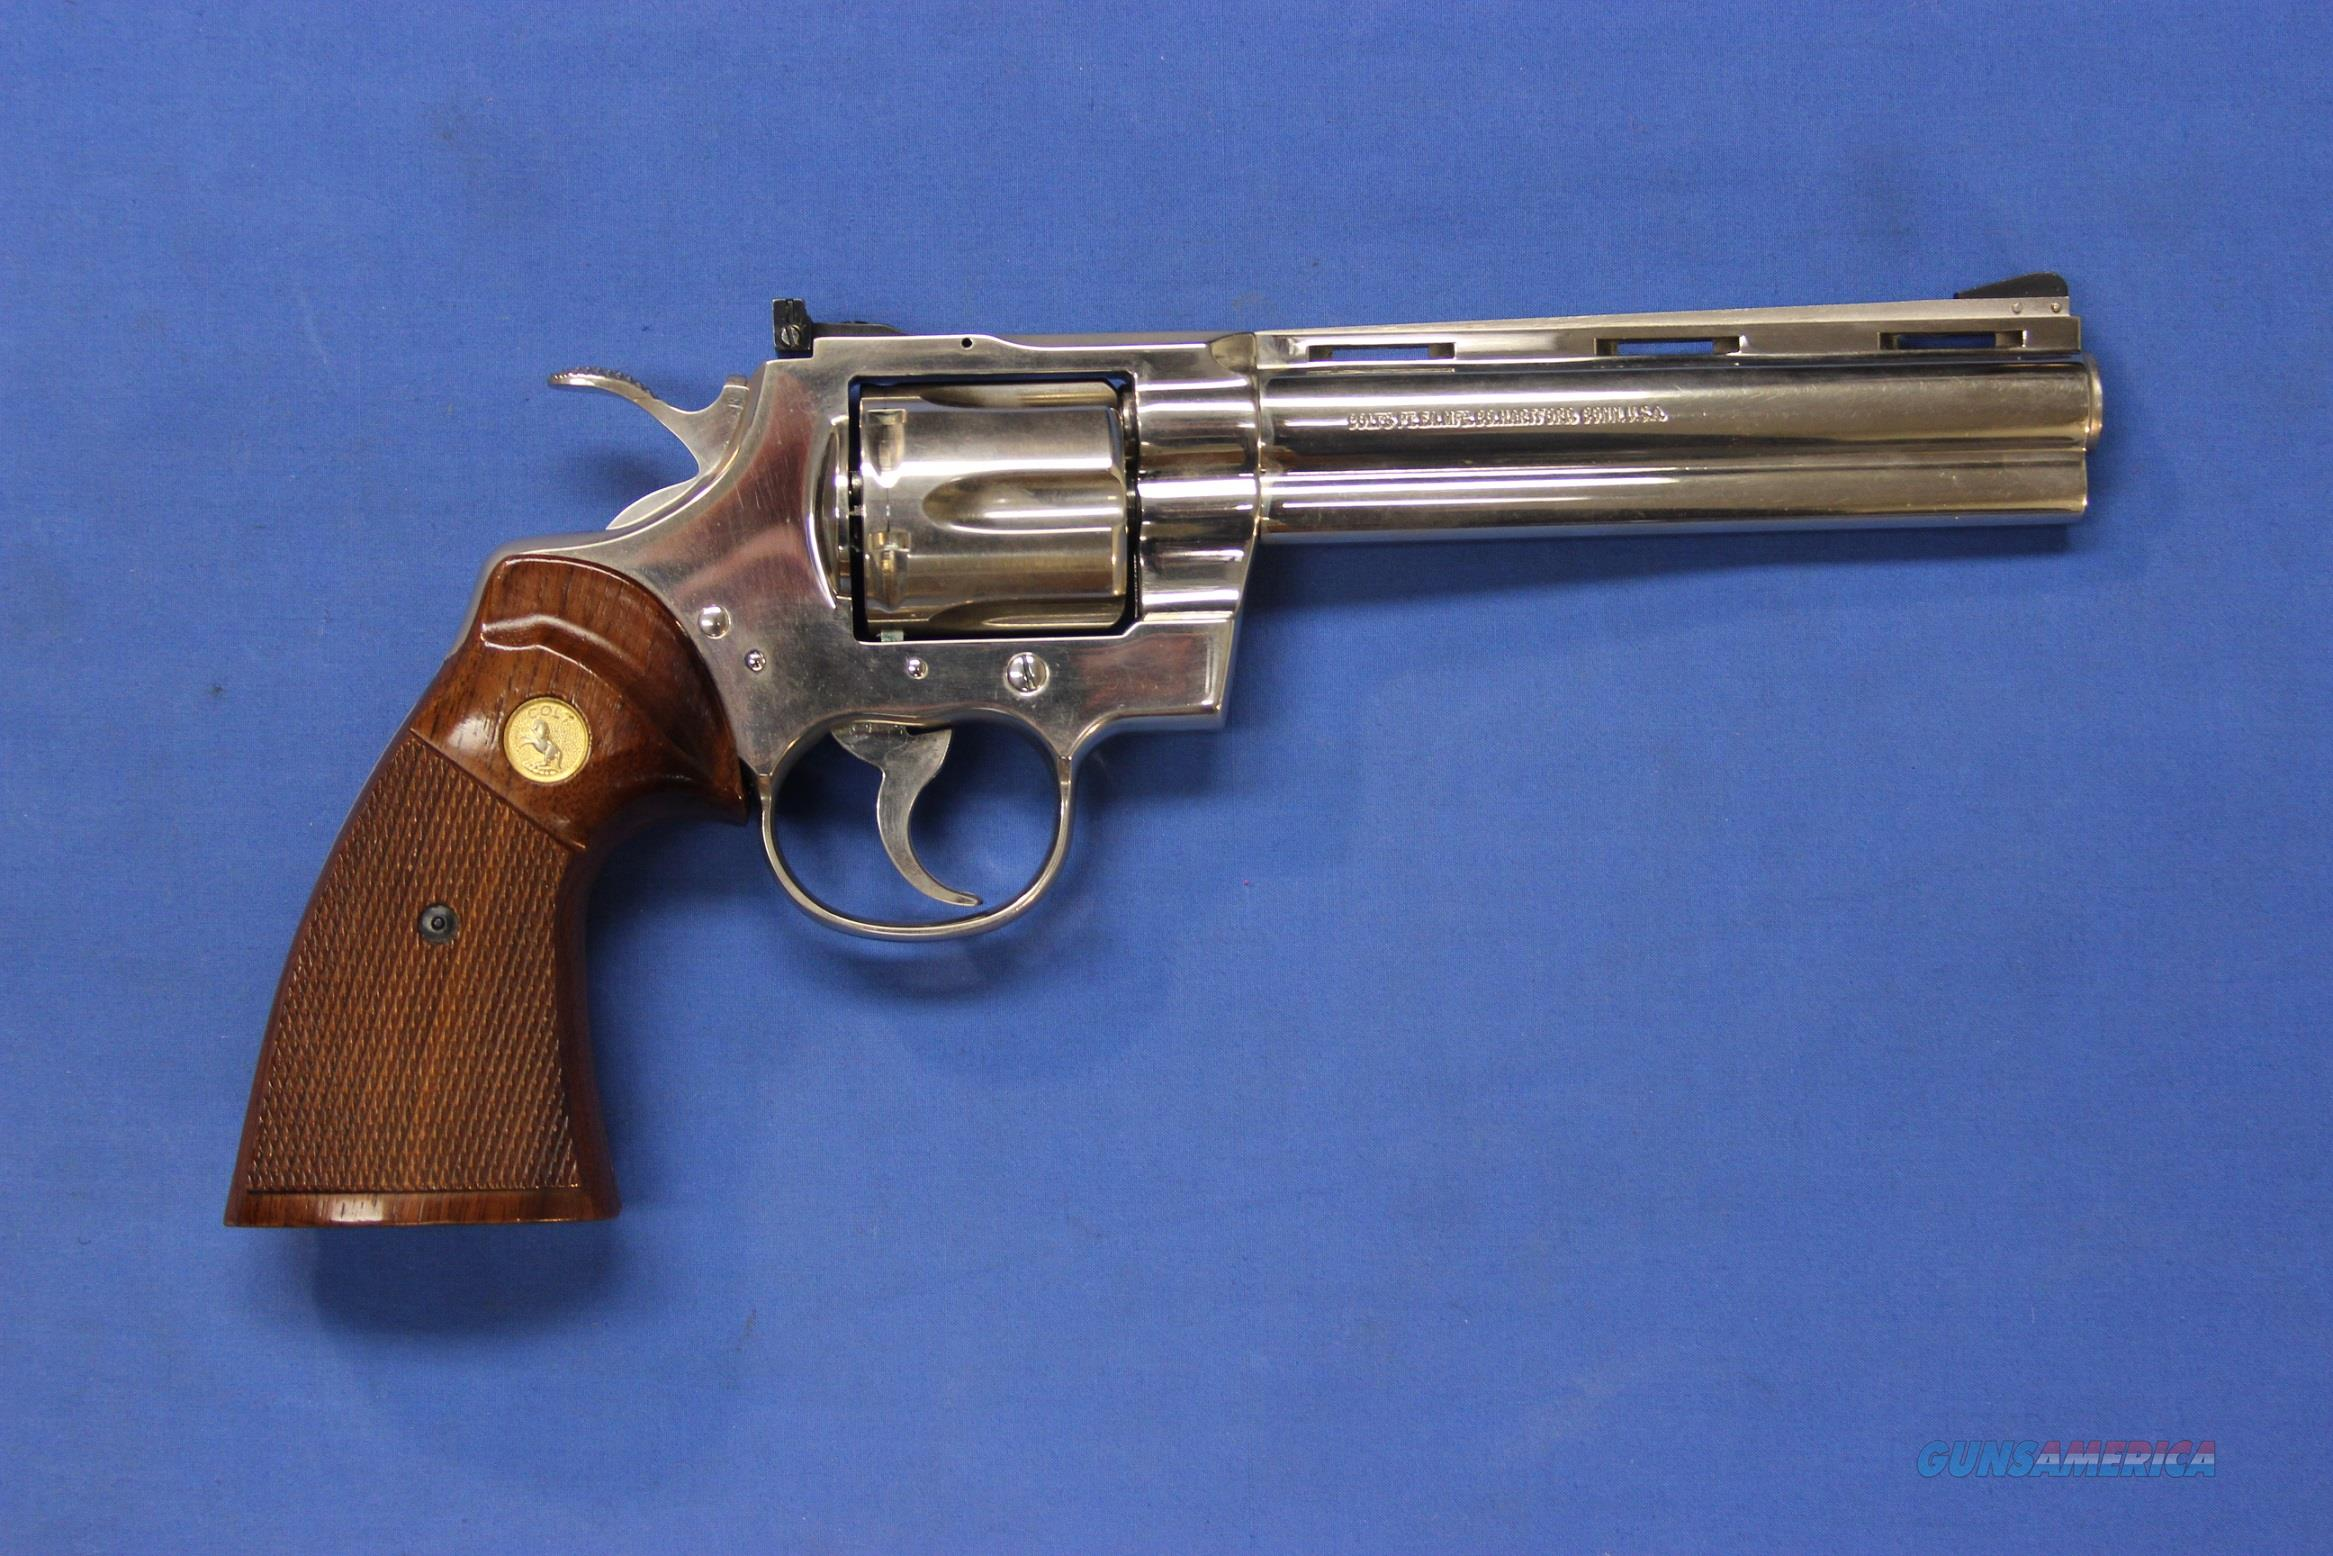 "COLT PYTHON NICKEL .357 MAGNUM 6"" - 1981 Mfg.  Guns > Pistols > Colt Double Action Revolvers- Modern"